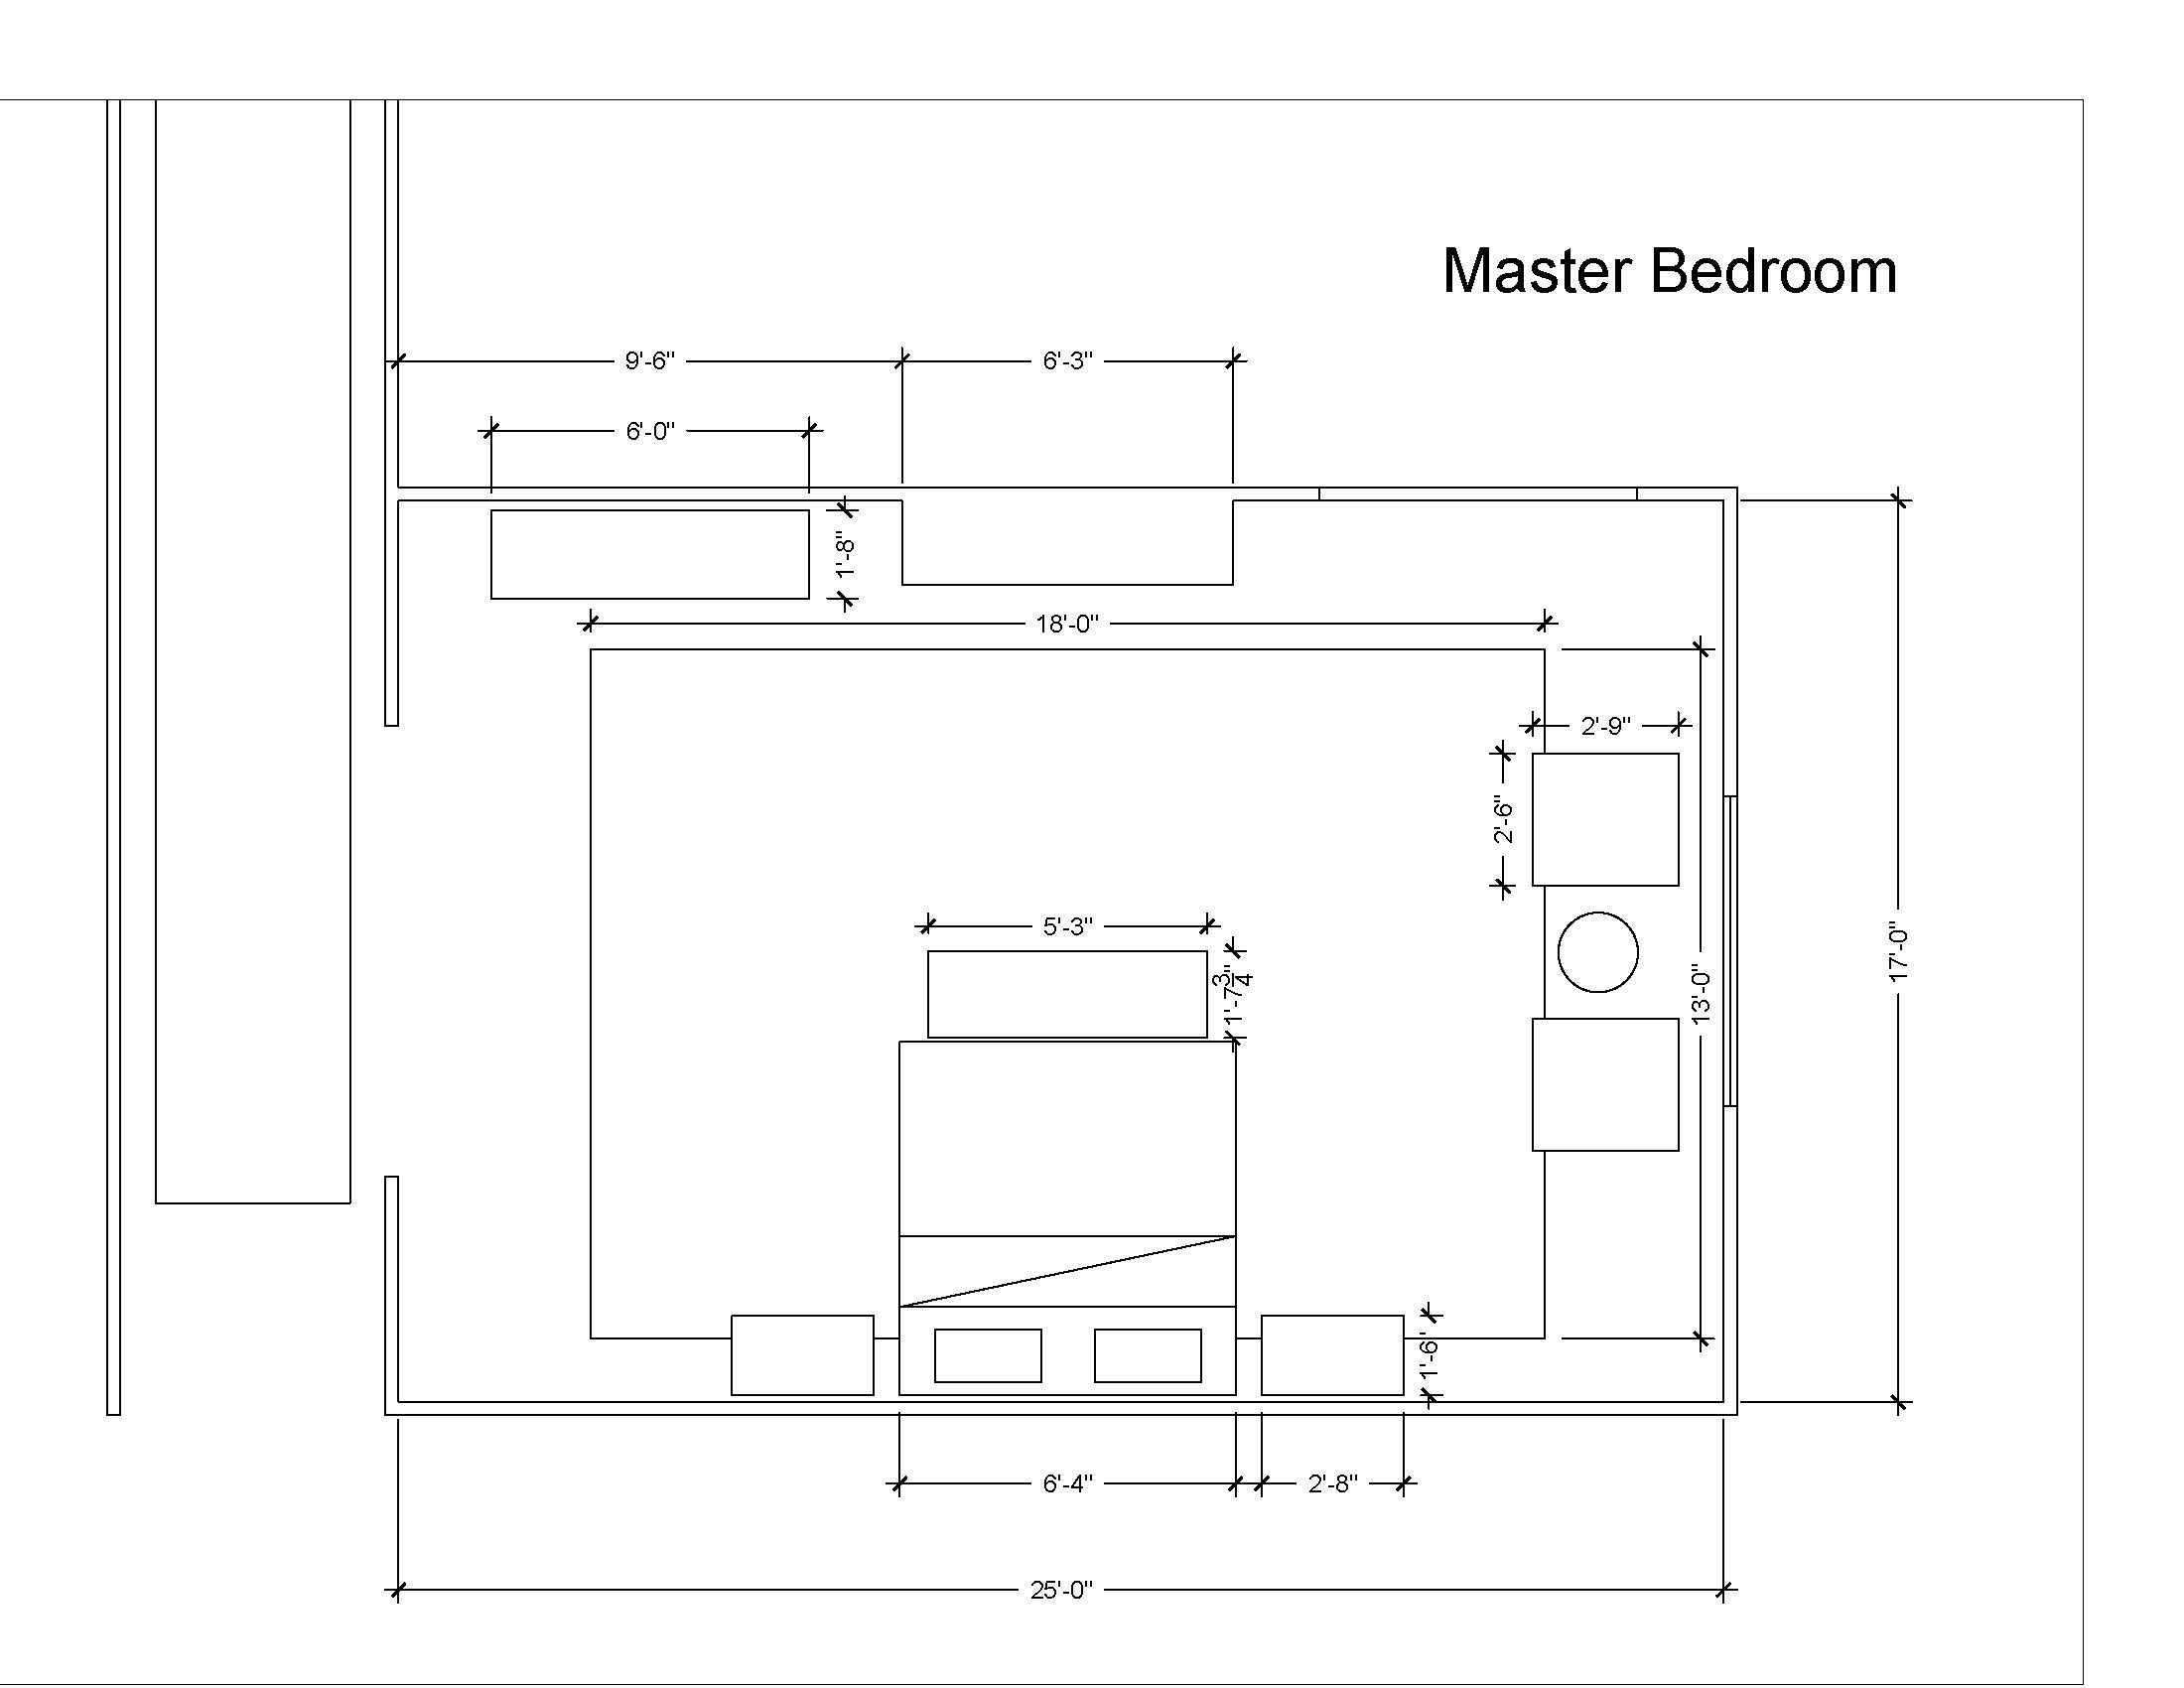 Master Bedroom Dimesions | Designed and Provided by: Anne Carr Designs